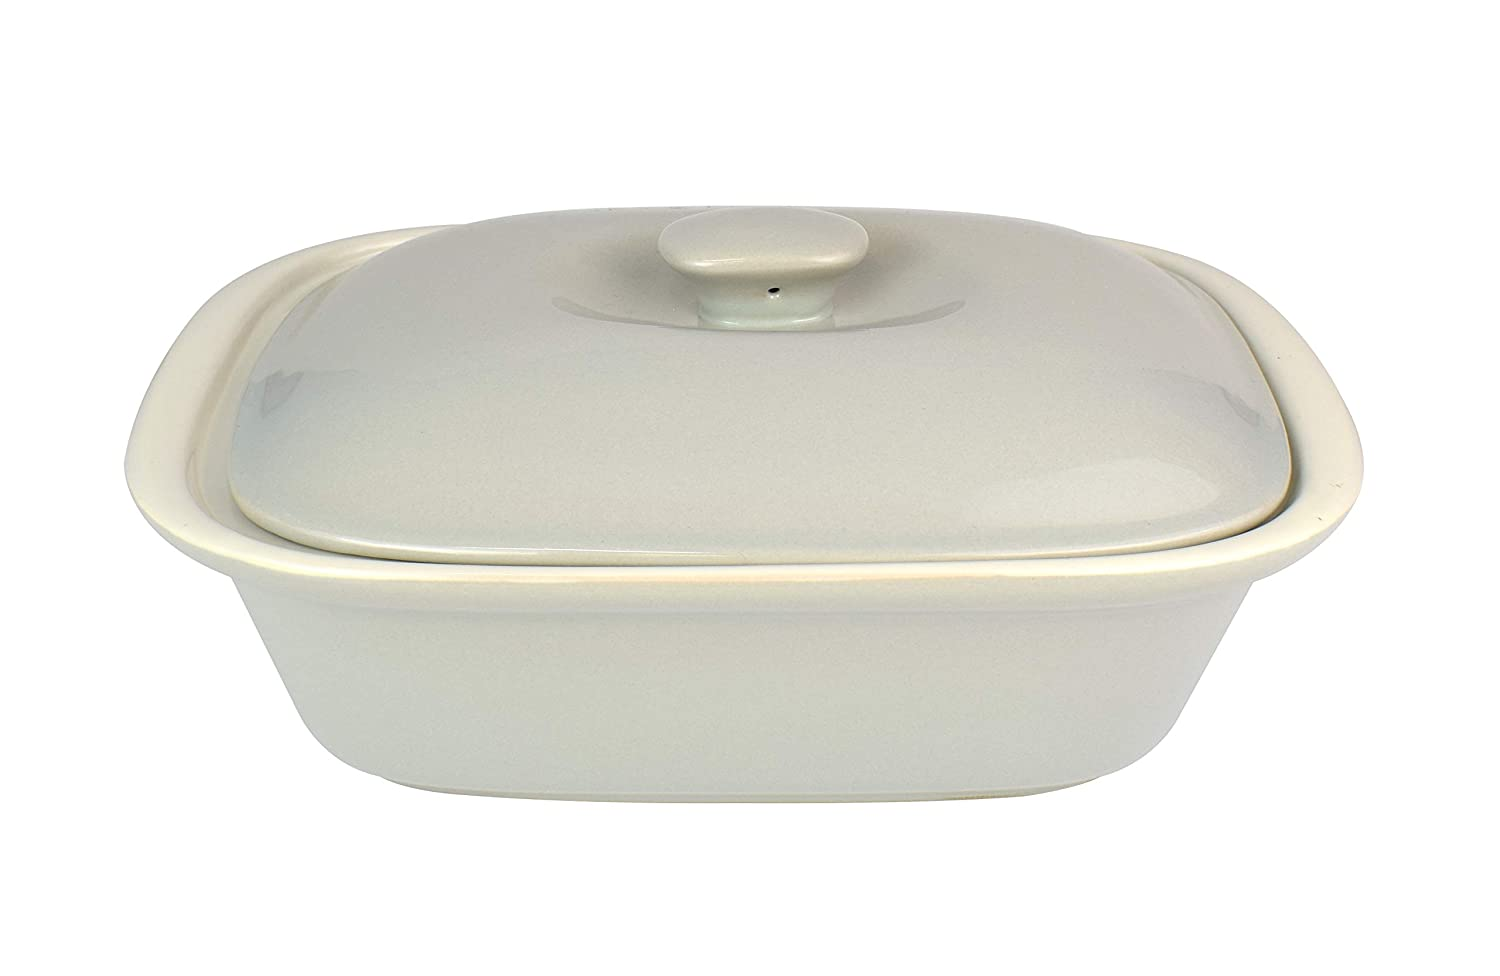 """Le Regalo HW1232 Stoneware Rectangular Bakeware Dish with Lid, 10.5""""x7.5""""x3"""" Off-White"""